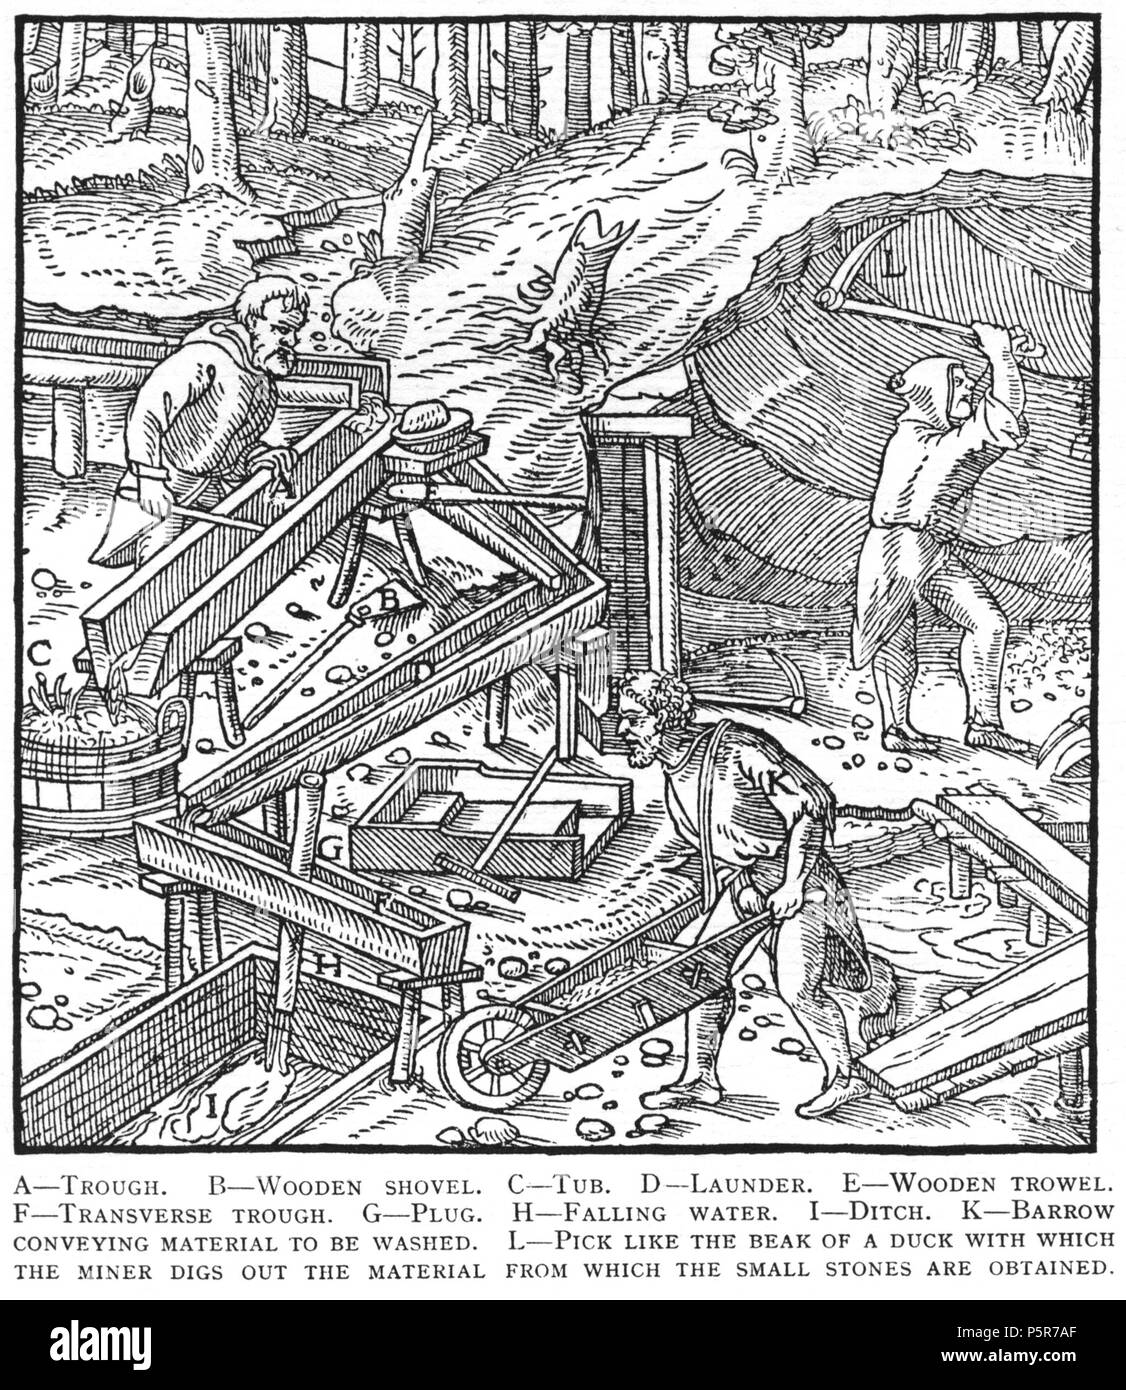 N/A. Woodcut illustration from De re metallica by Georgius Agricola. This is a 300dpi scan from the 1950 Dover edition of the 1913 Hoover translation of the 1556 reference. The Dover edition has slightly smaller size prints than the Hoover (which is a rare book). The woodcuts were recreated for the 1913 printing. Filenames (except for the title page) indicate the chapter (2, 3, 5, etc.) followed by the sequential number of the illustration. 2 May 2005, 07:13:28. TCO (talk) 223 Book8-54 - Stock Image